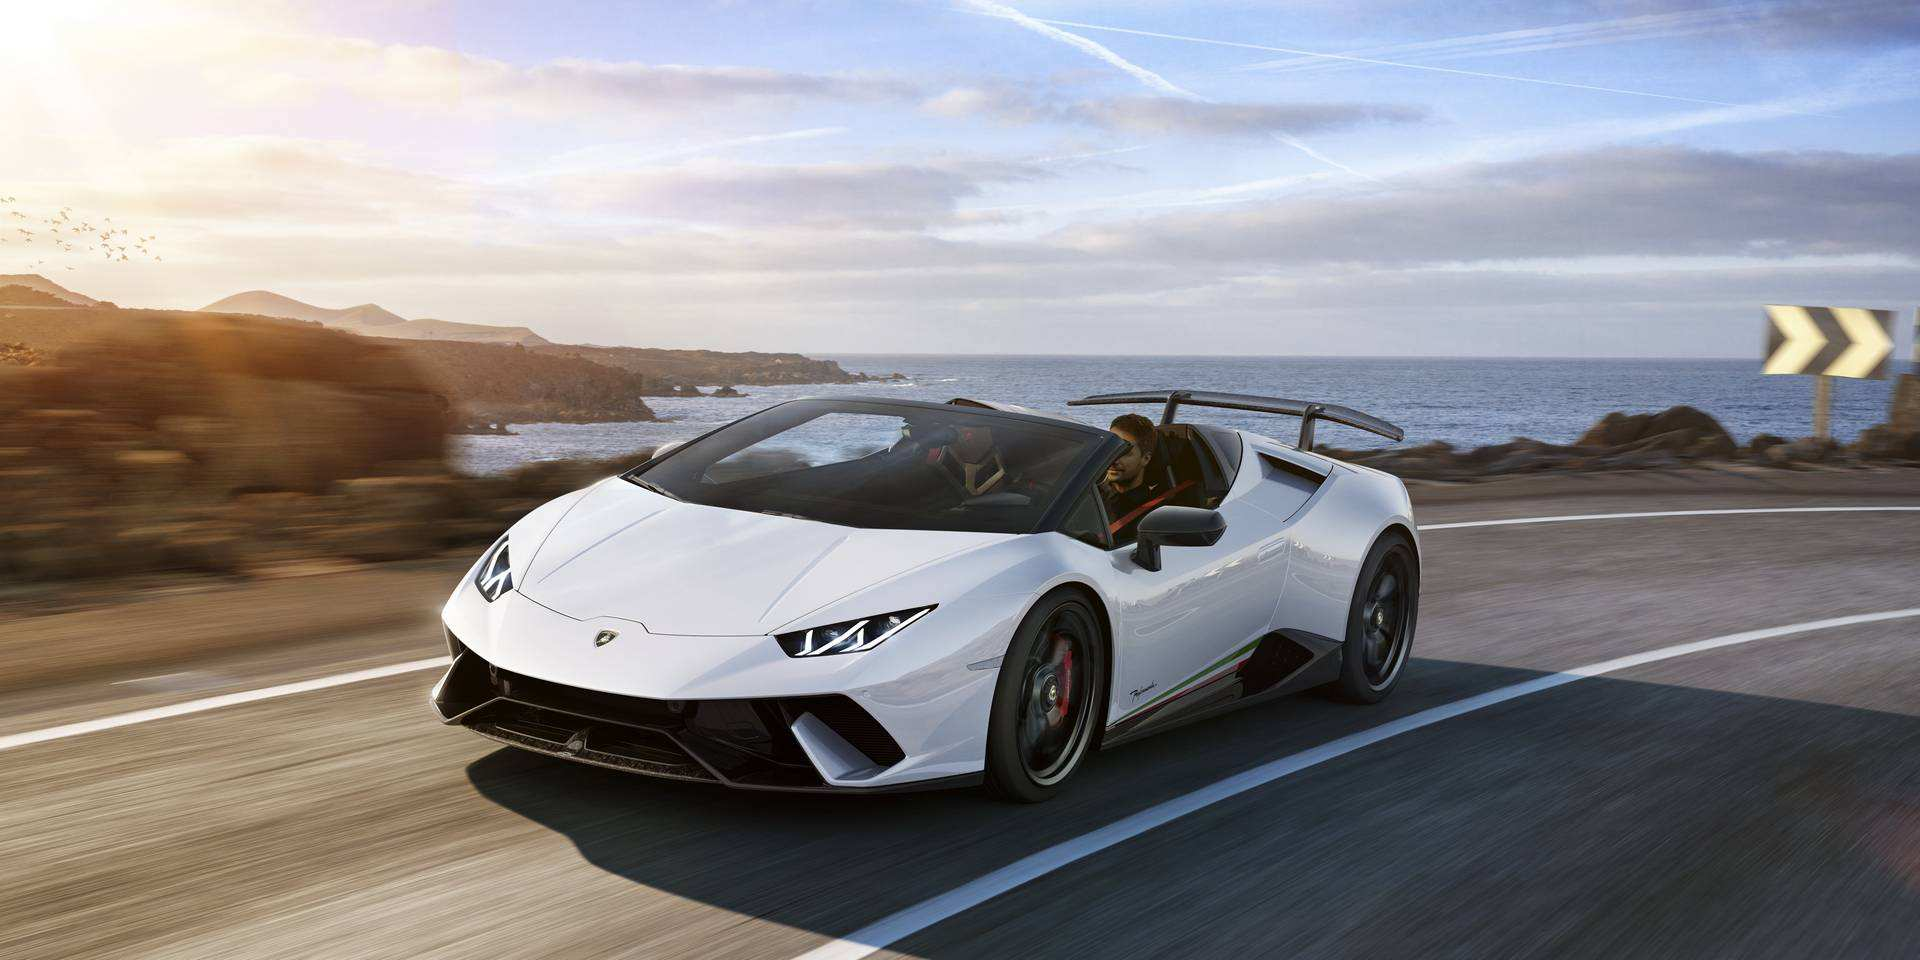 70 All New 2019 Lamborghini Huracan Style by 2019 Lamborghini Huracan